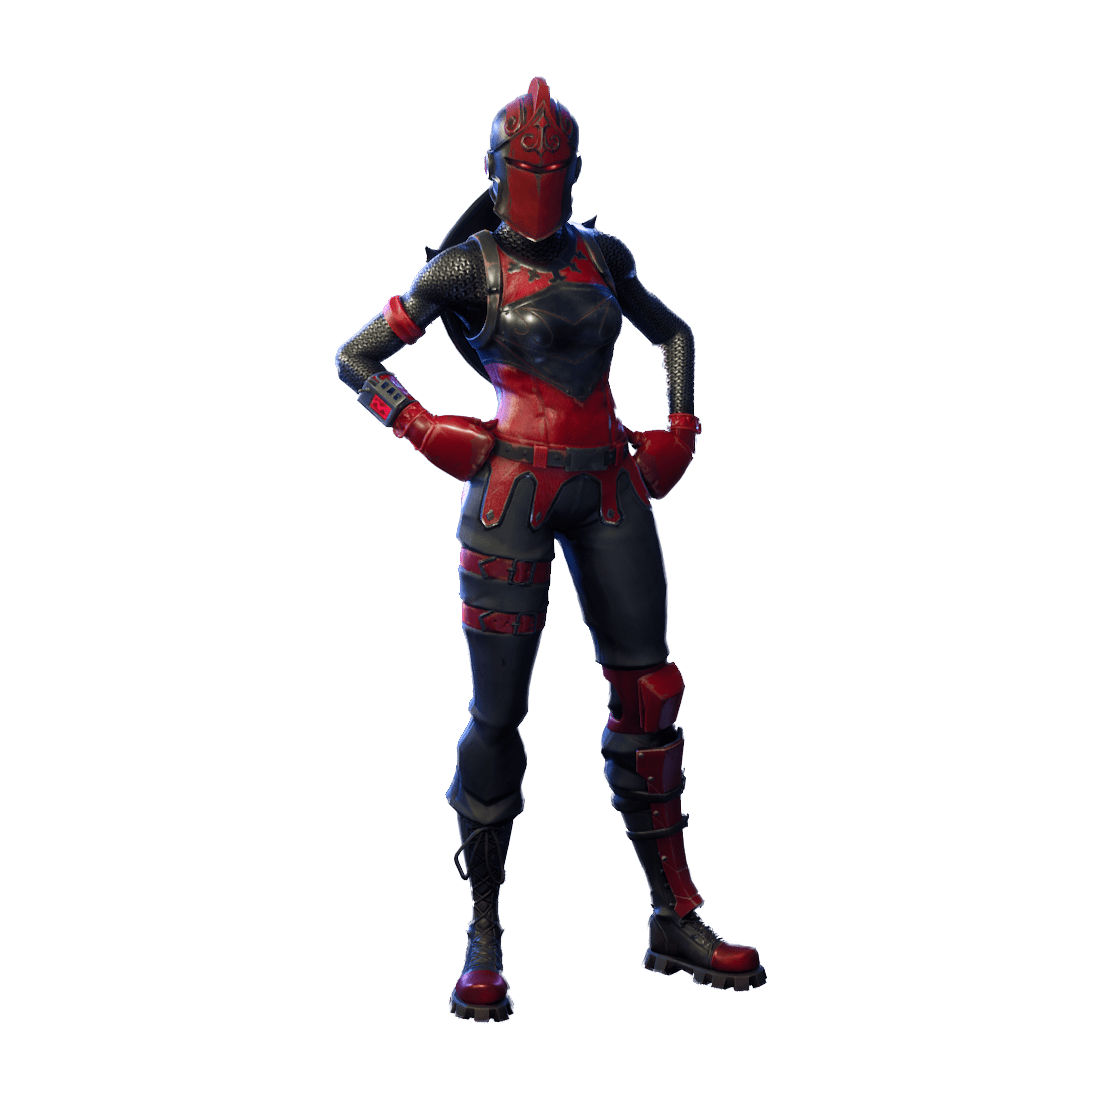 Fortnite Red Knight | Outfits - Fortnite Skins